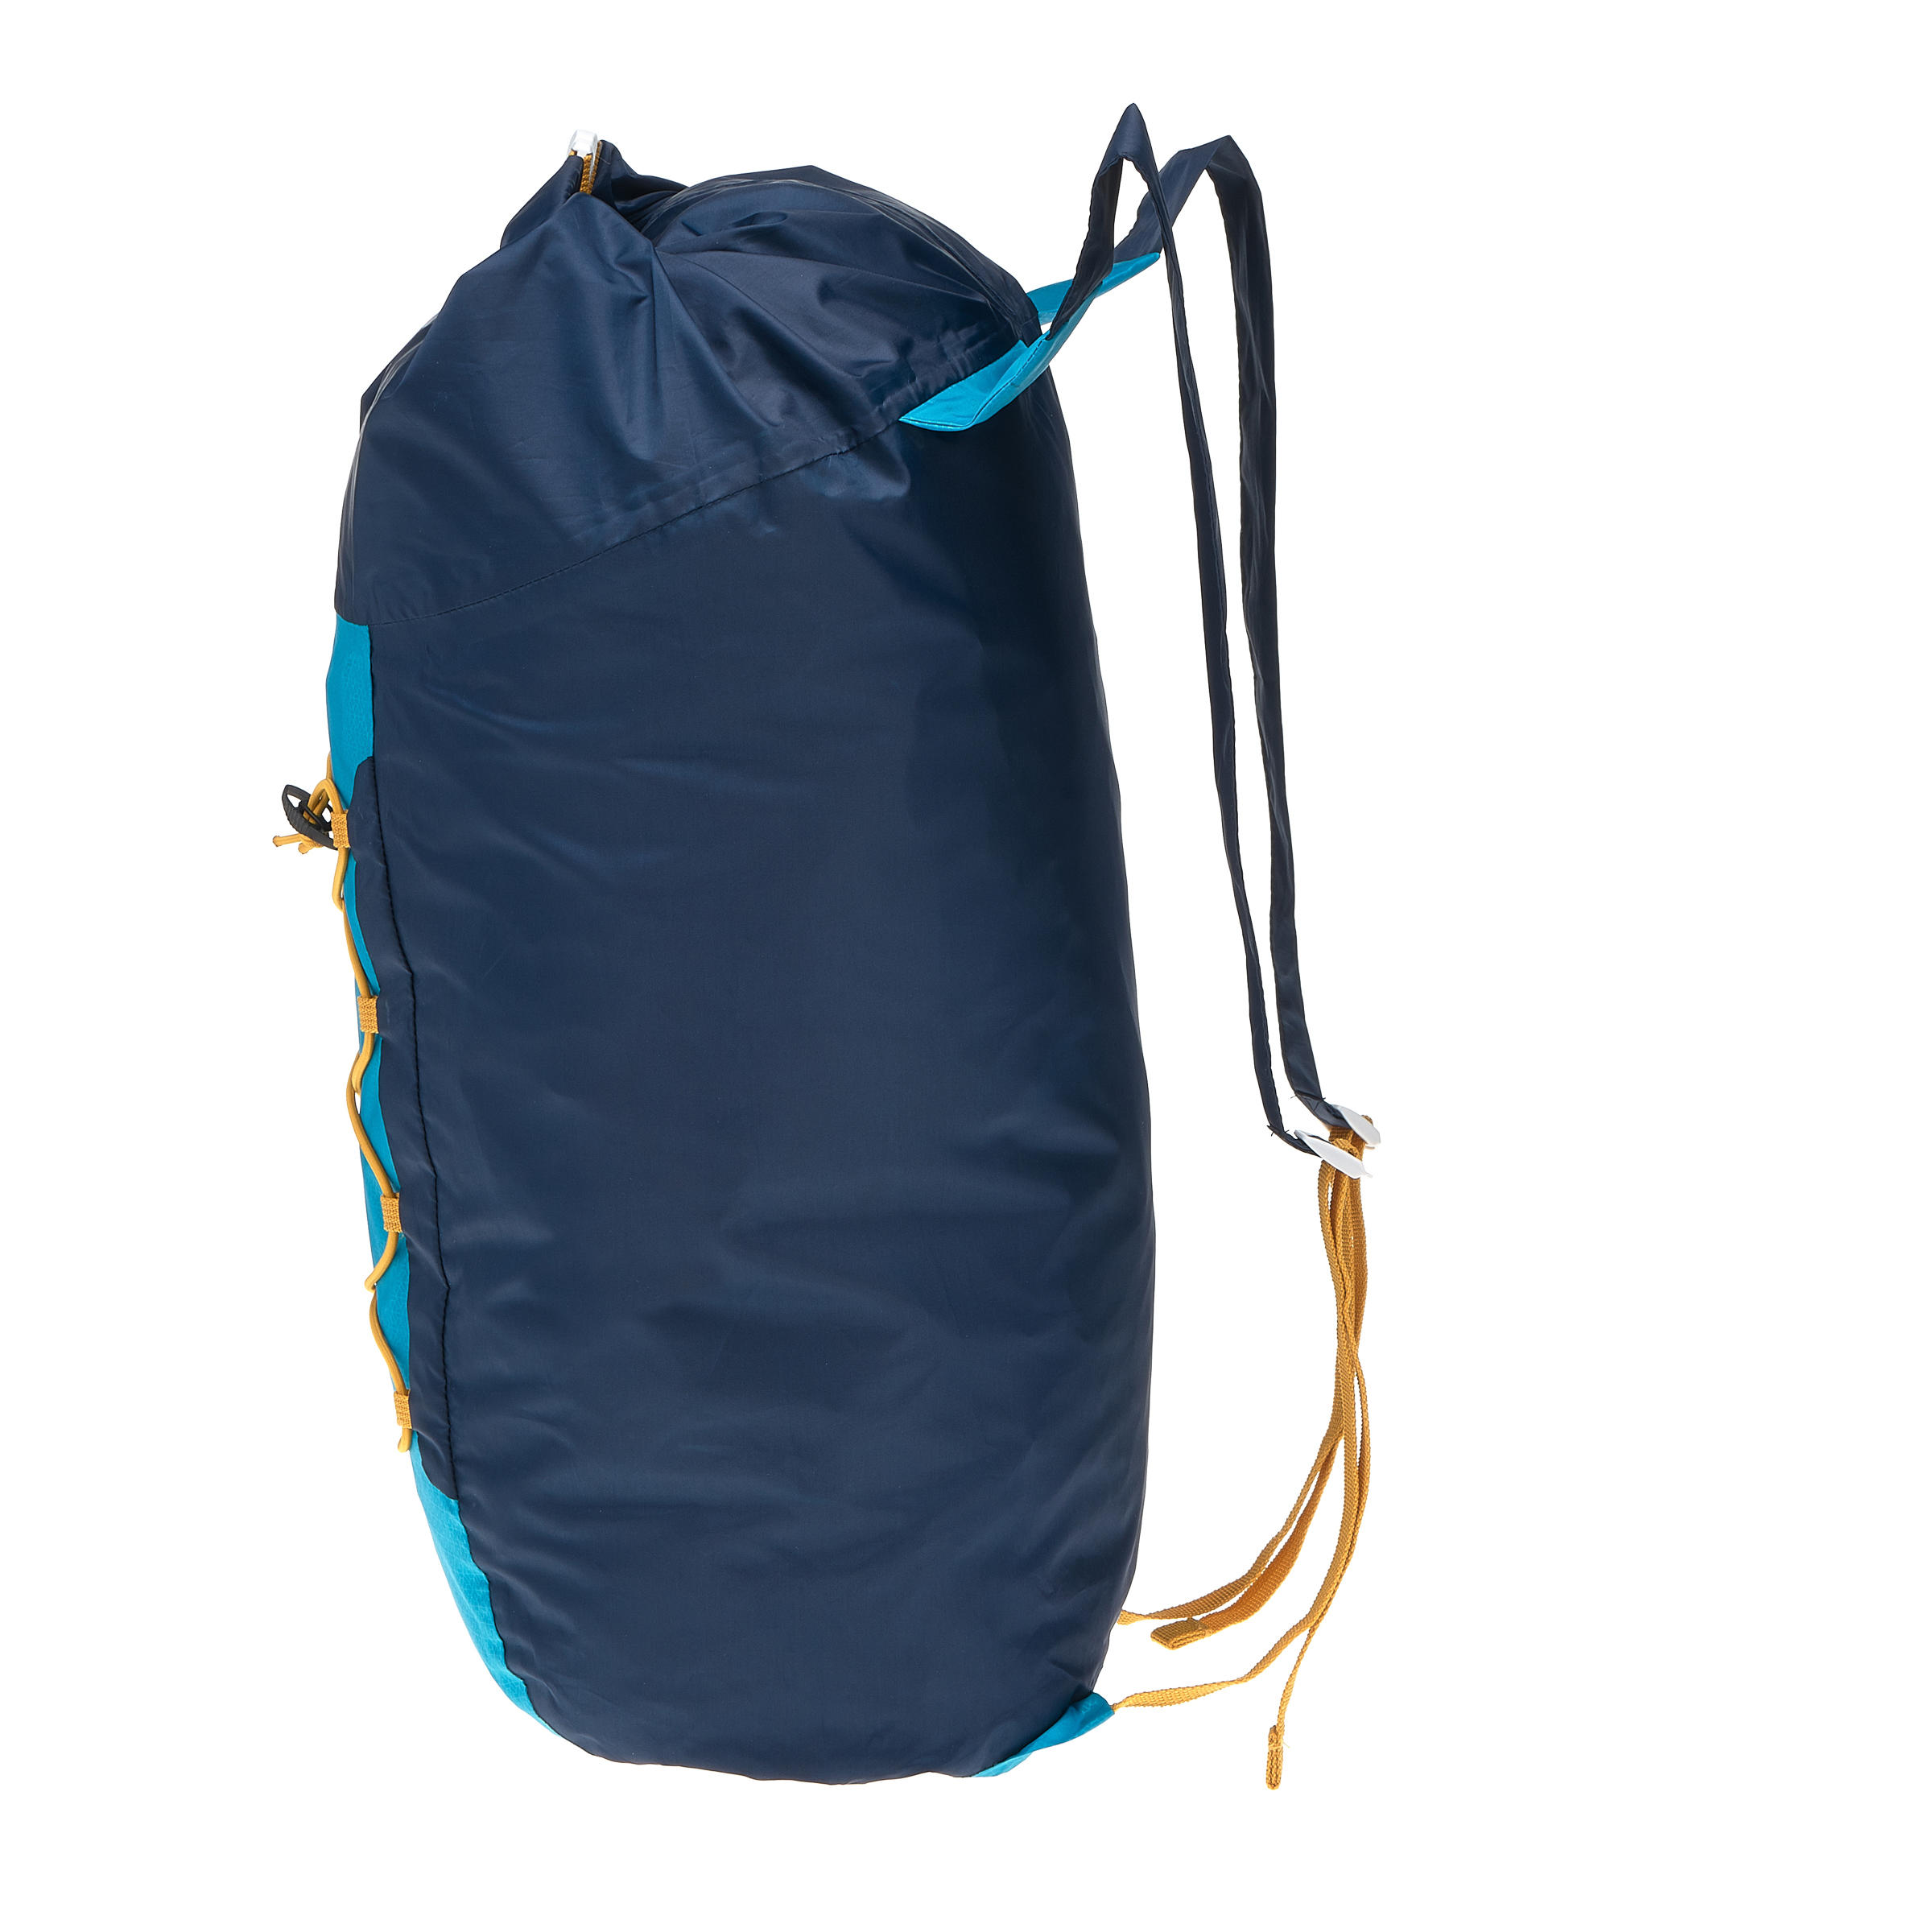 Waterproof Ultra Compact 20 litres Extra Backpack - Blue